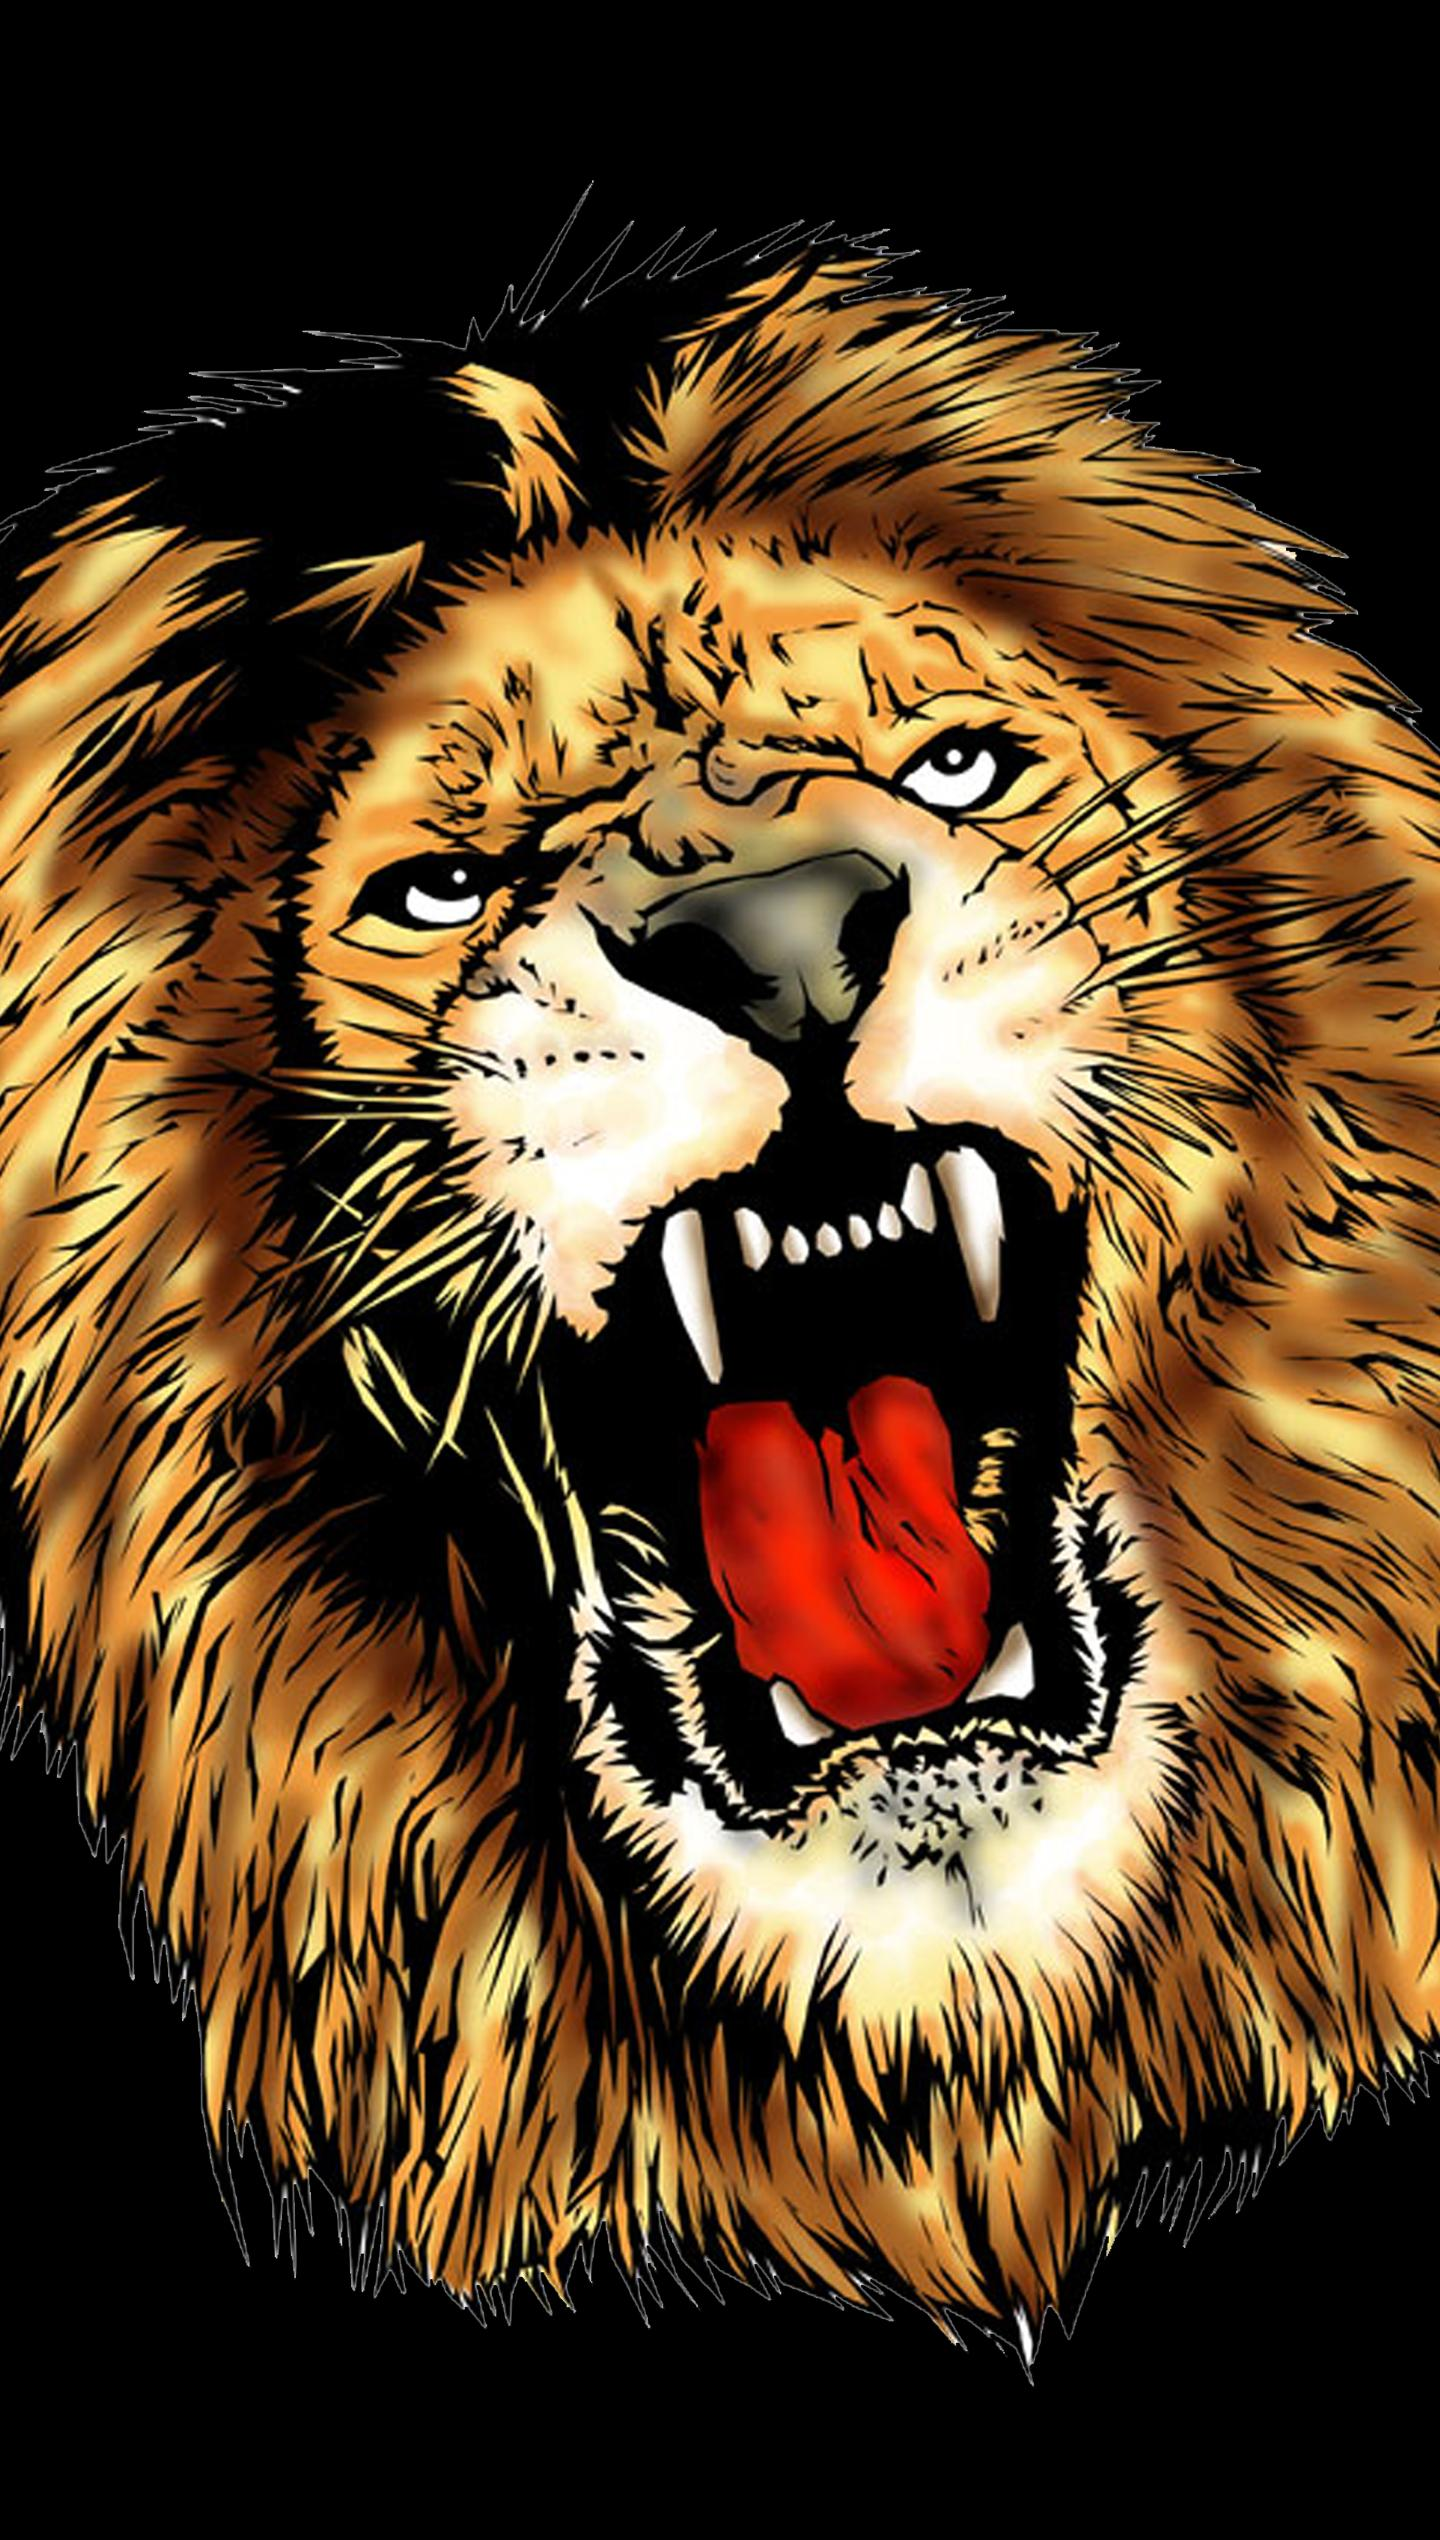 Scary Lion Color By Number Draw Book Pixel Art Pour Android